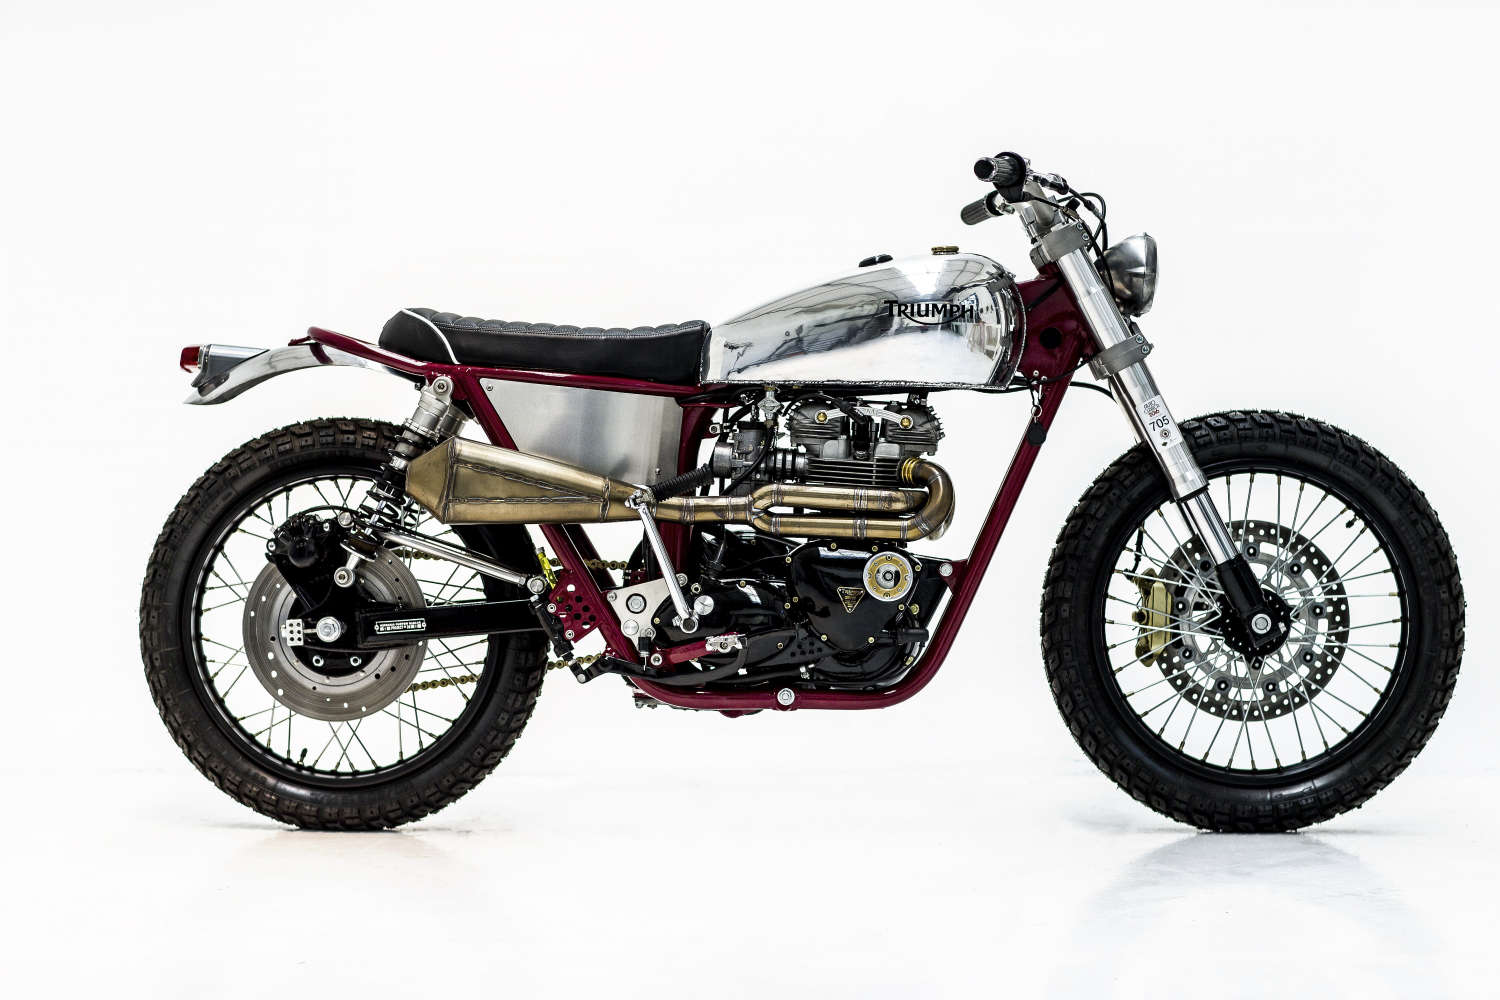 t140 cafe racer Herenciacustomgarage